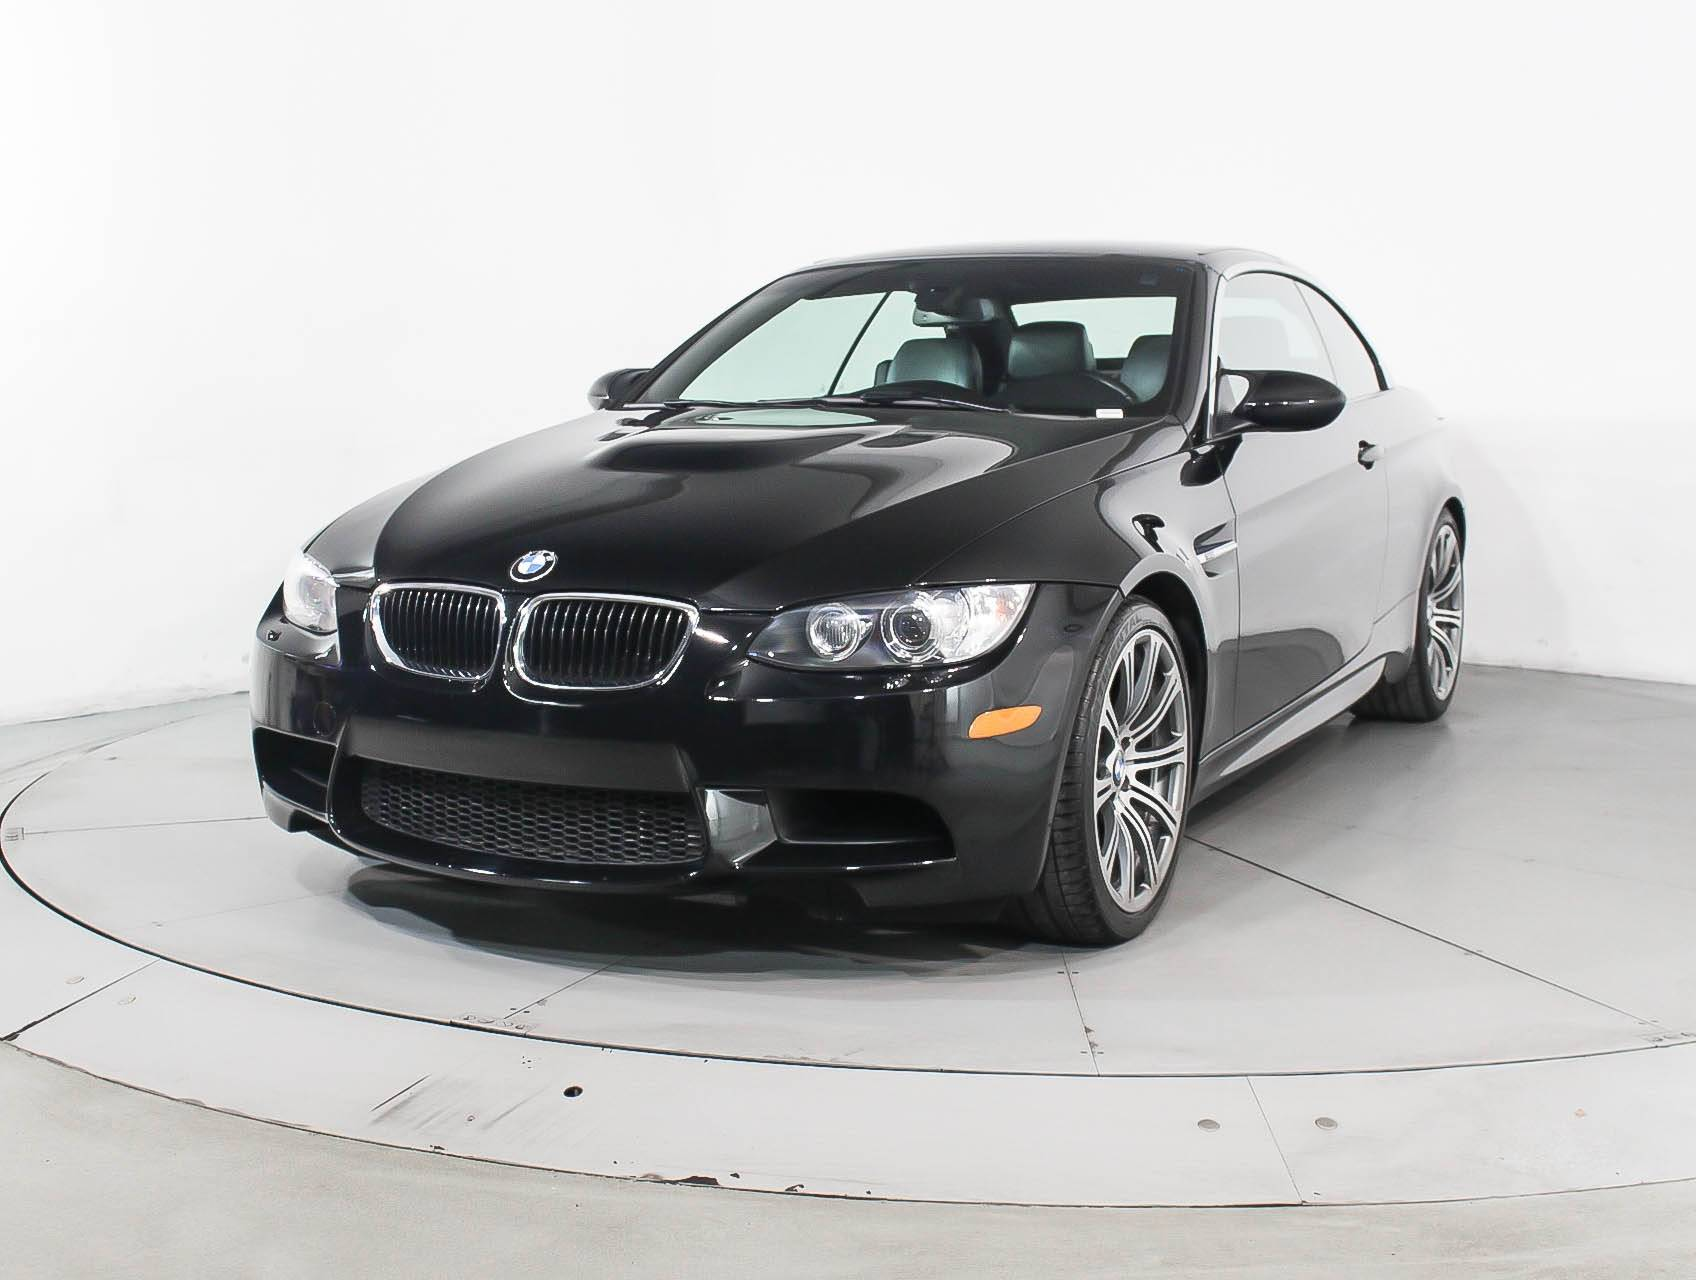 Used 2013 Bmw M3 Convertible Convertible For Sale In Wholesale Fl